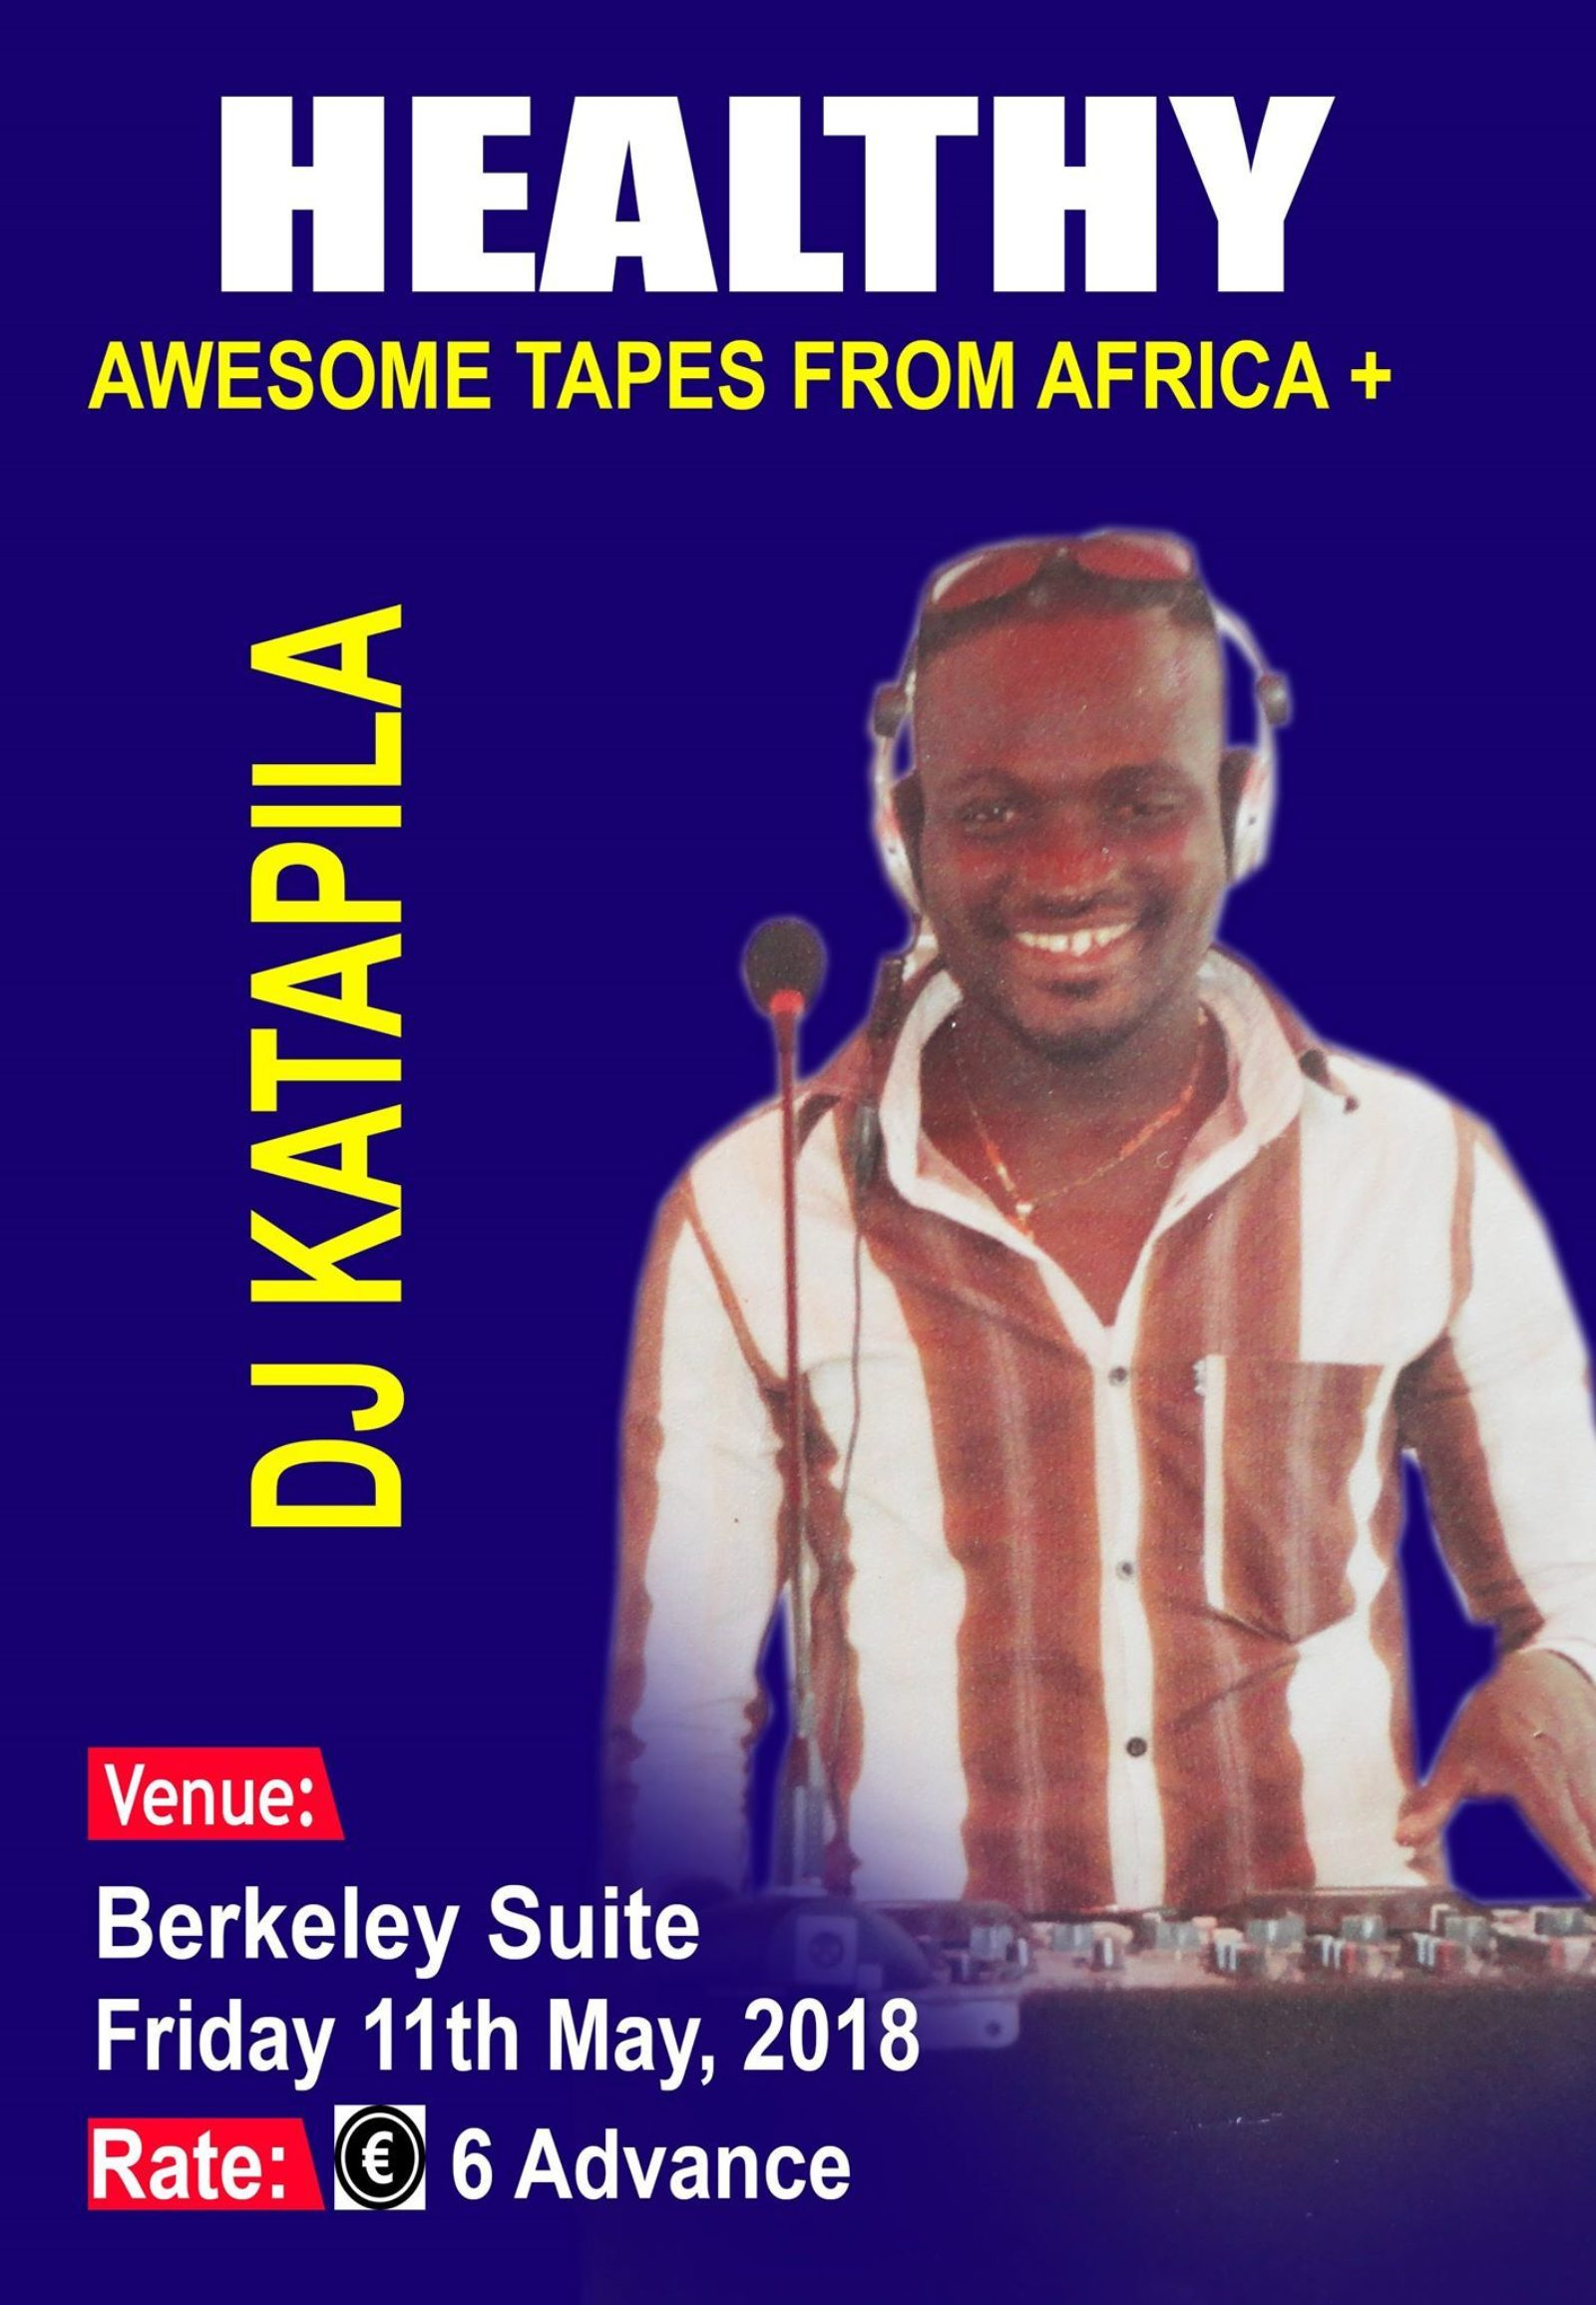 HEALTHY w/ Awesome Tapes From Africa & DJ Katapila